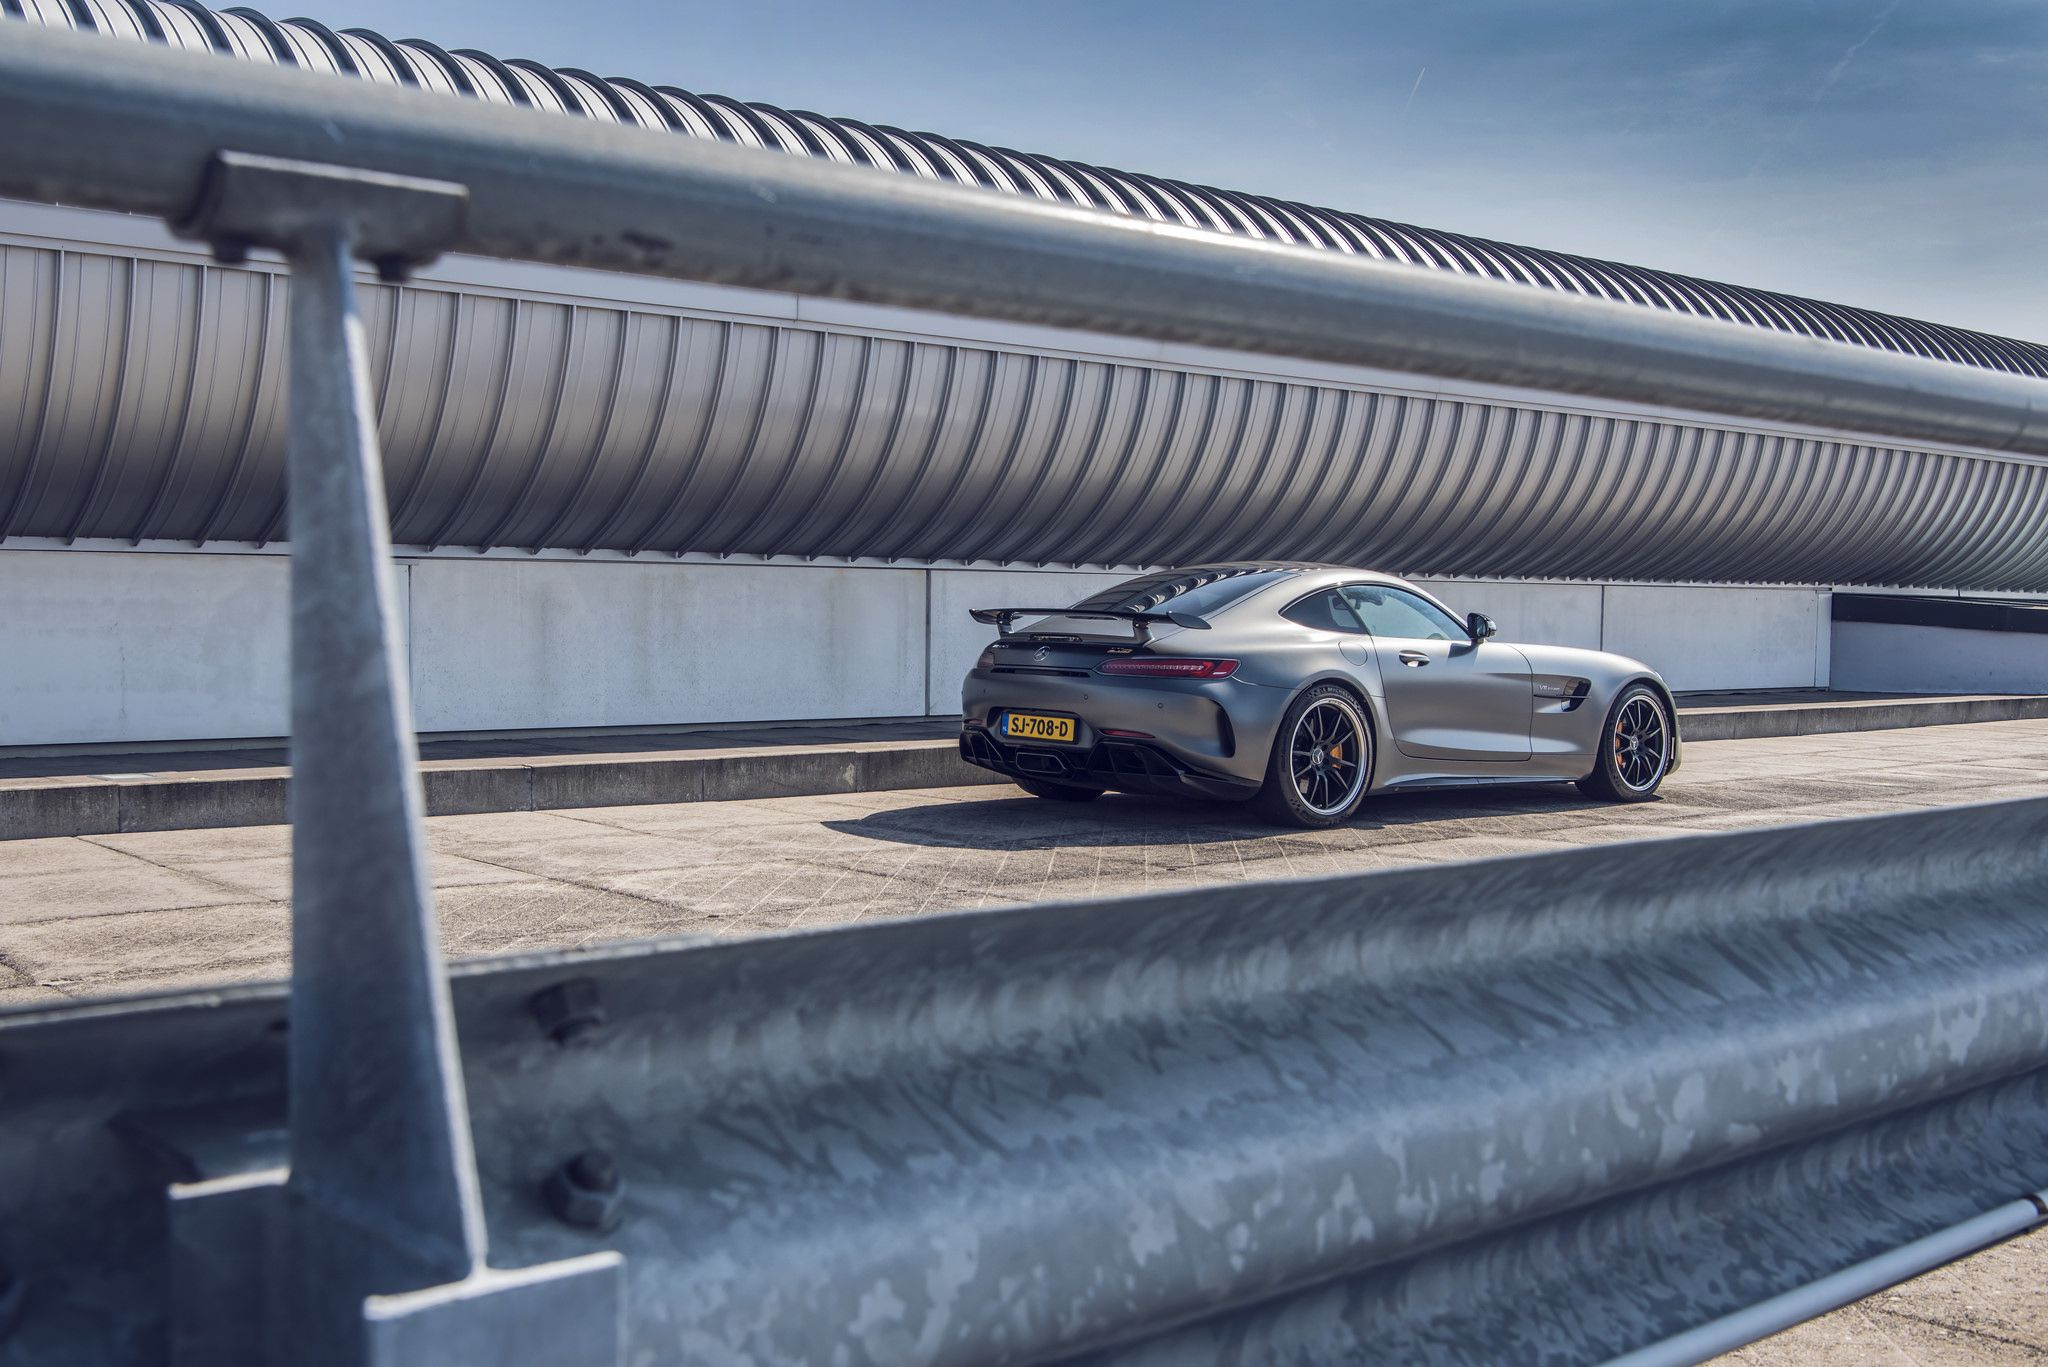 grey Mercedes-Benz AMG GT R rear bumper